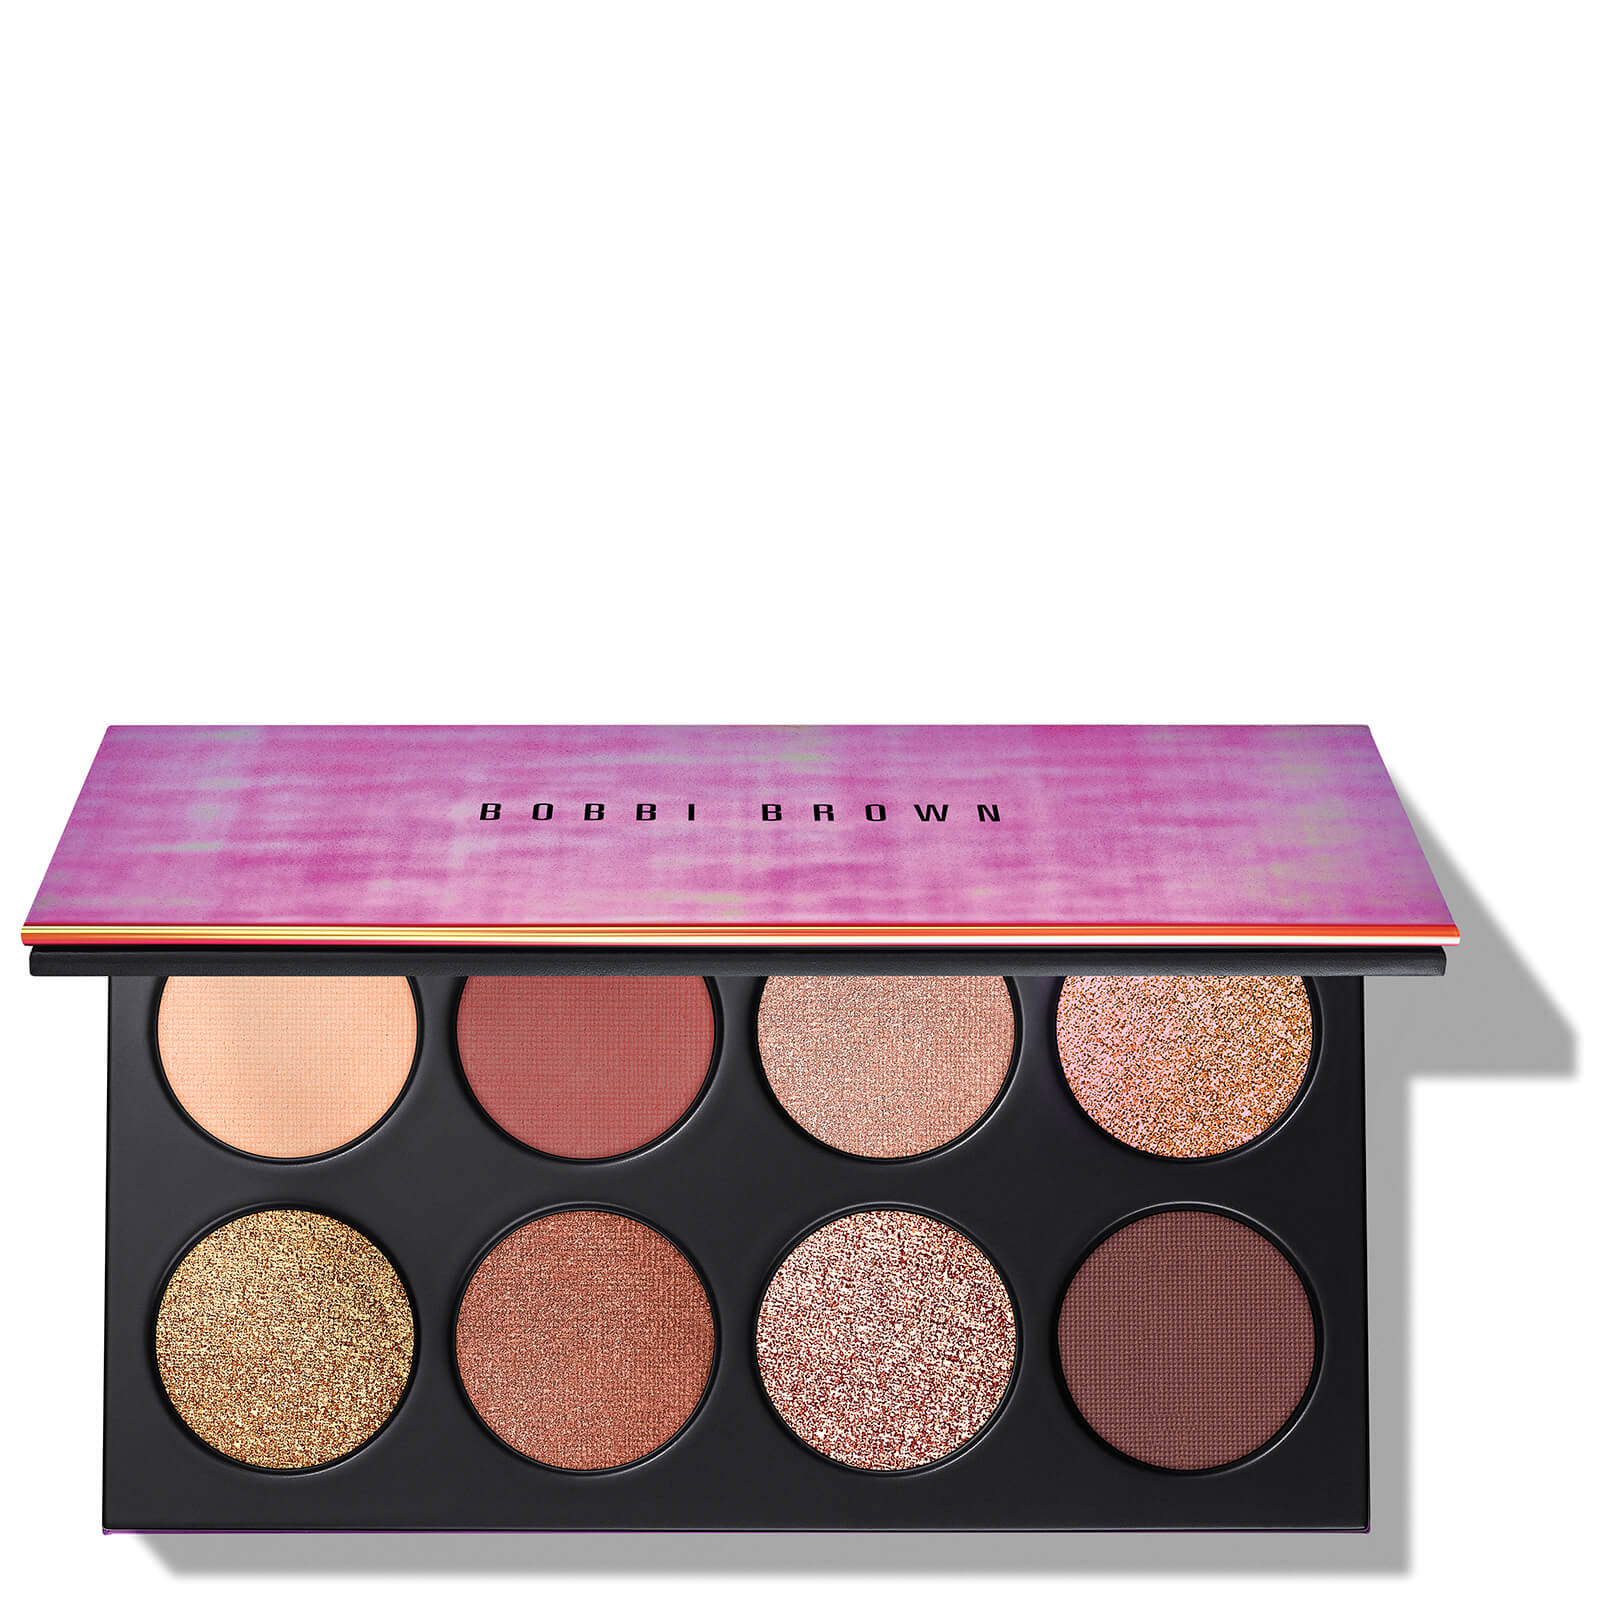 Bobbi Brown Infra-Red Eye Shadow Palette 10g